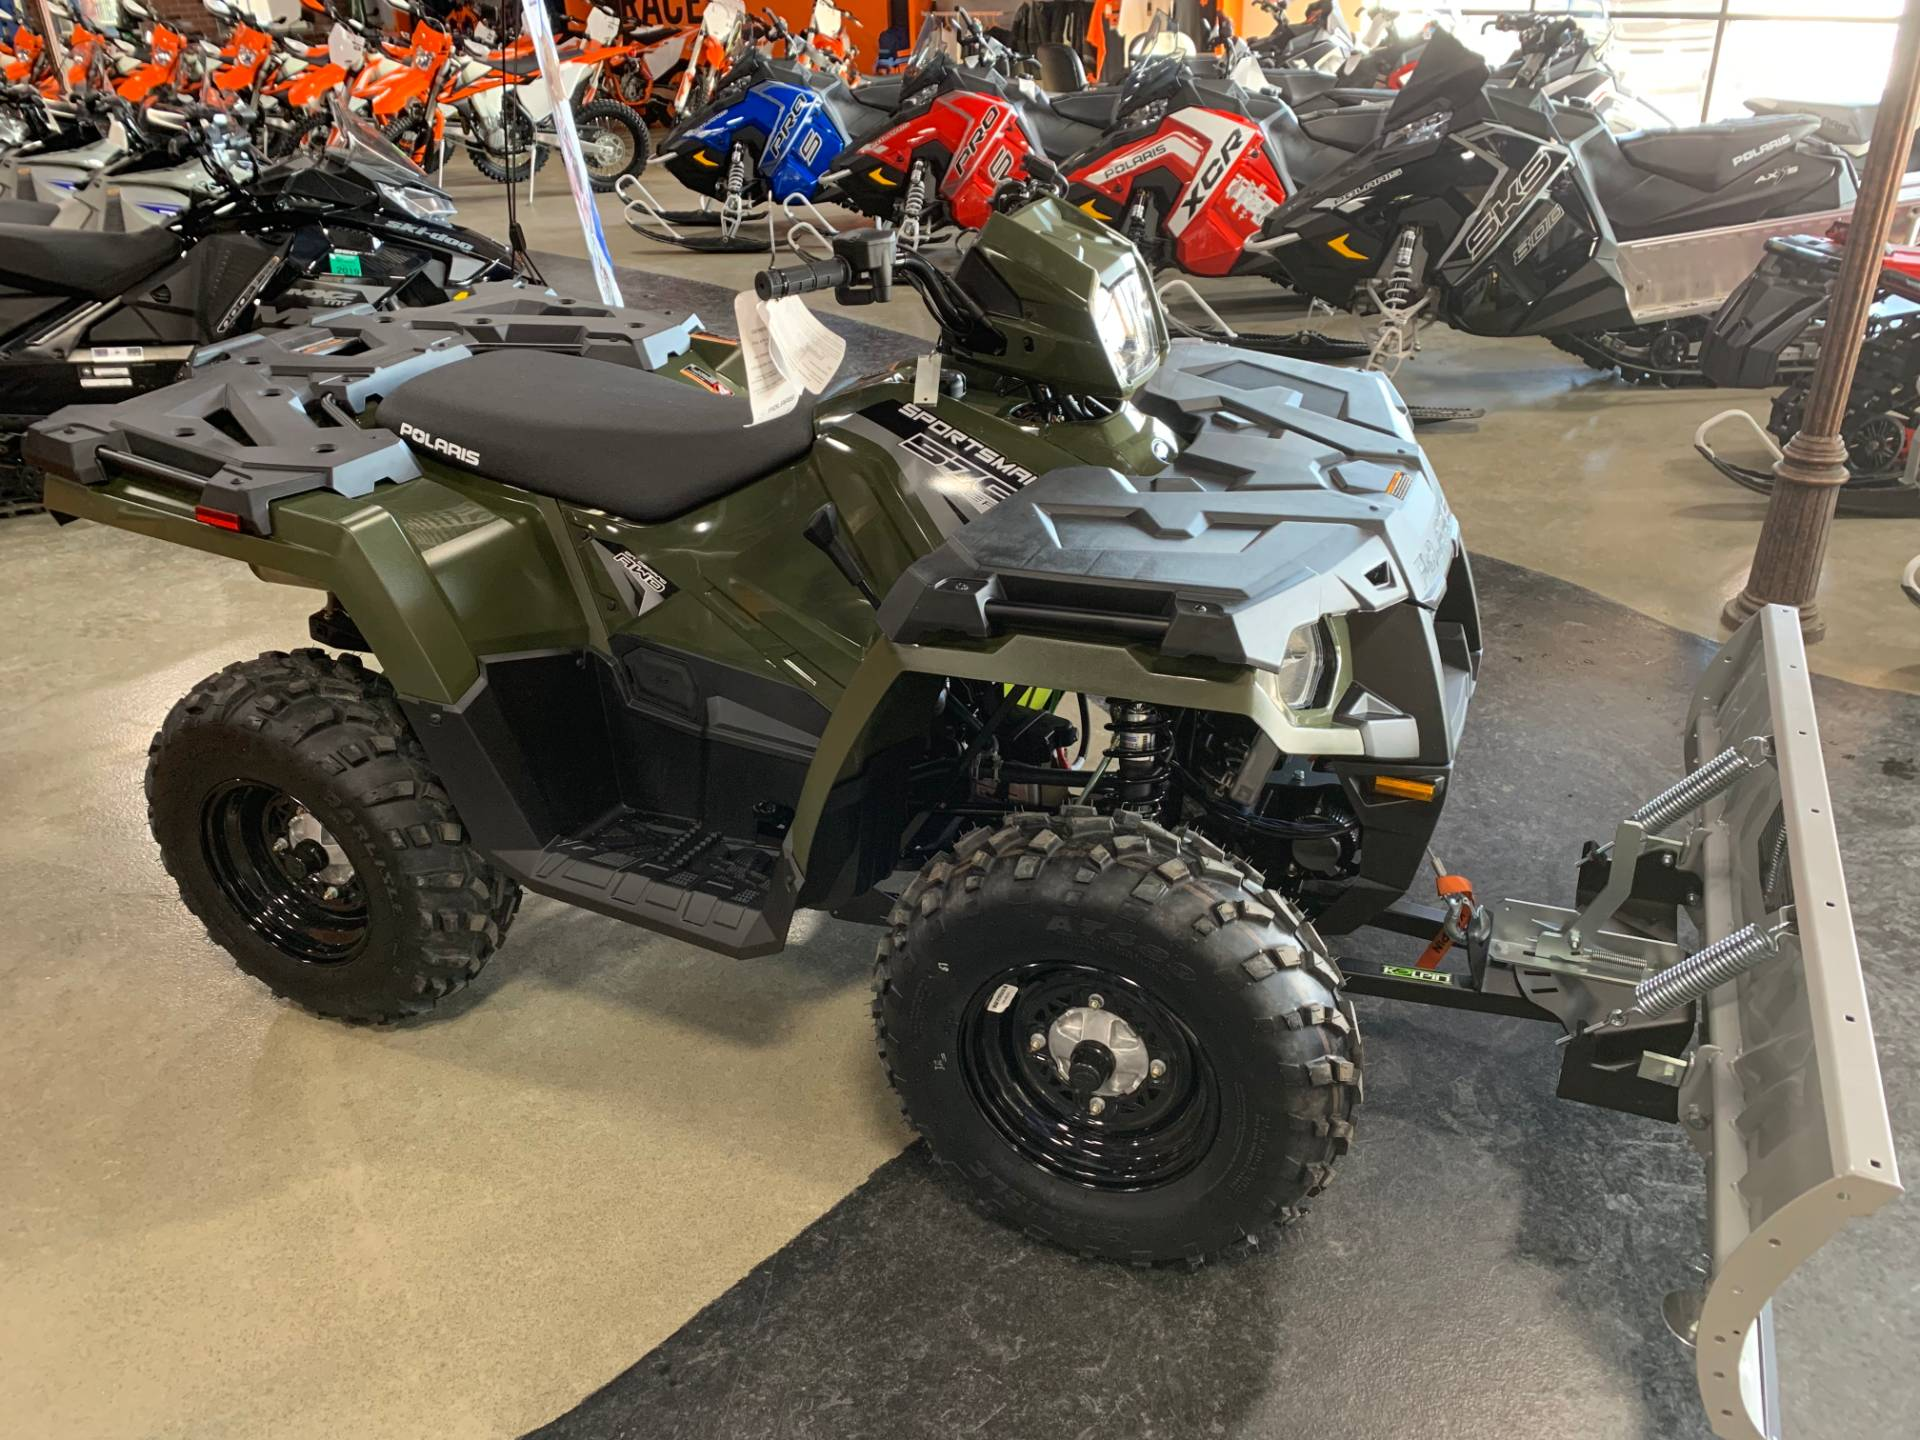 2018 Polaris Sportsman 570 in Dimondale, Michigan - Photo 1